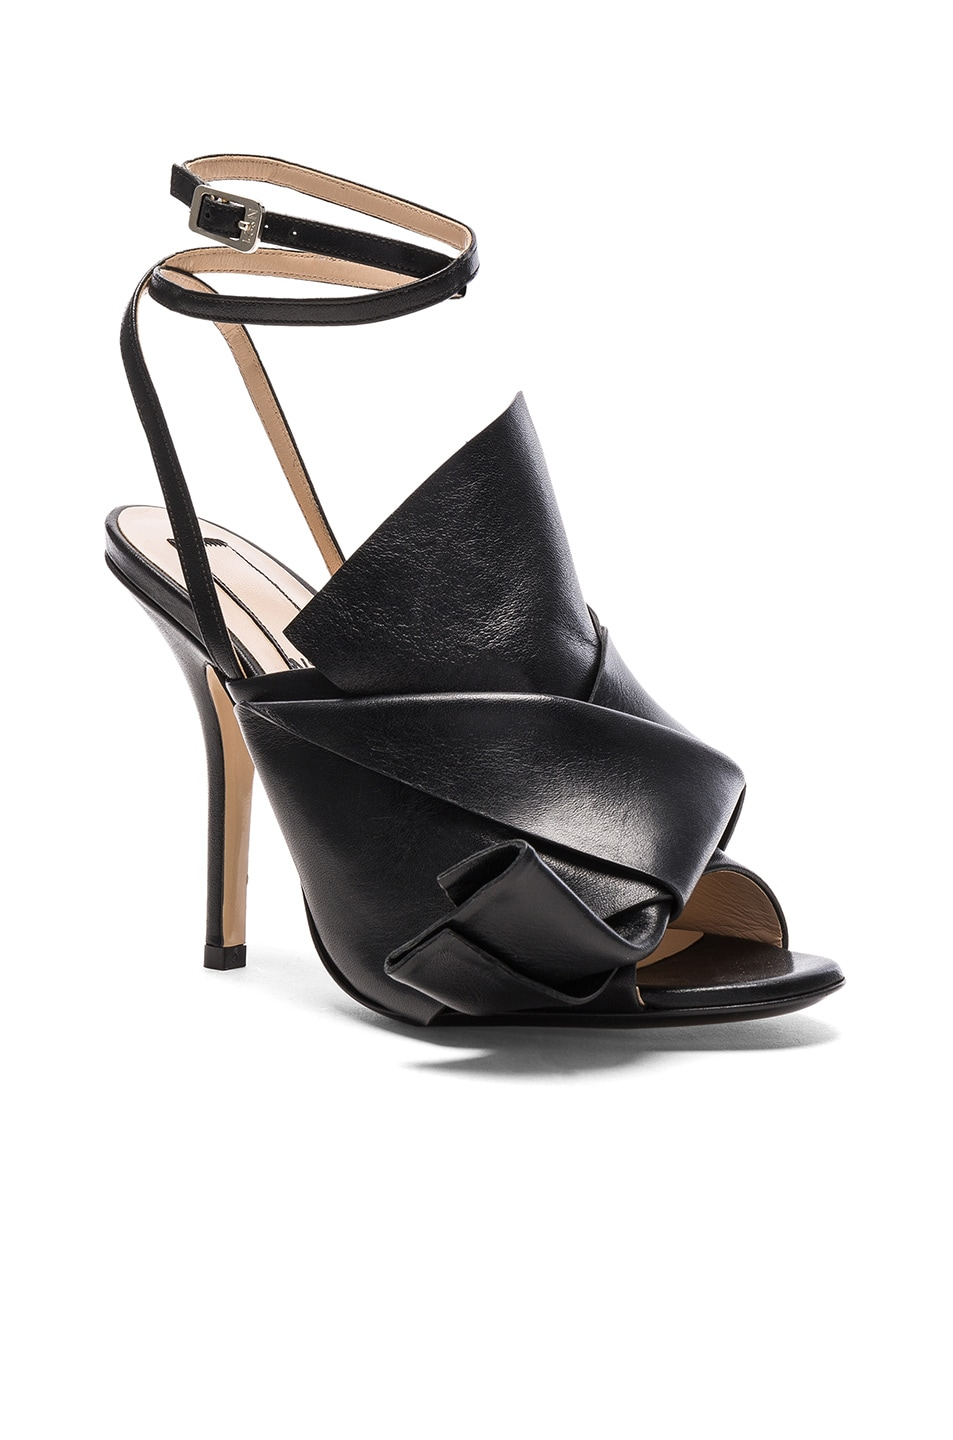 Image 2 of No. 21 Bow Leather Heels in Black